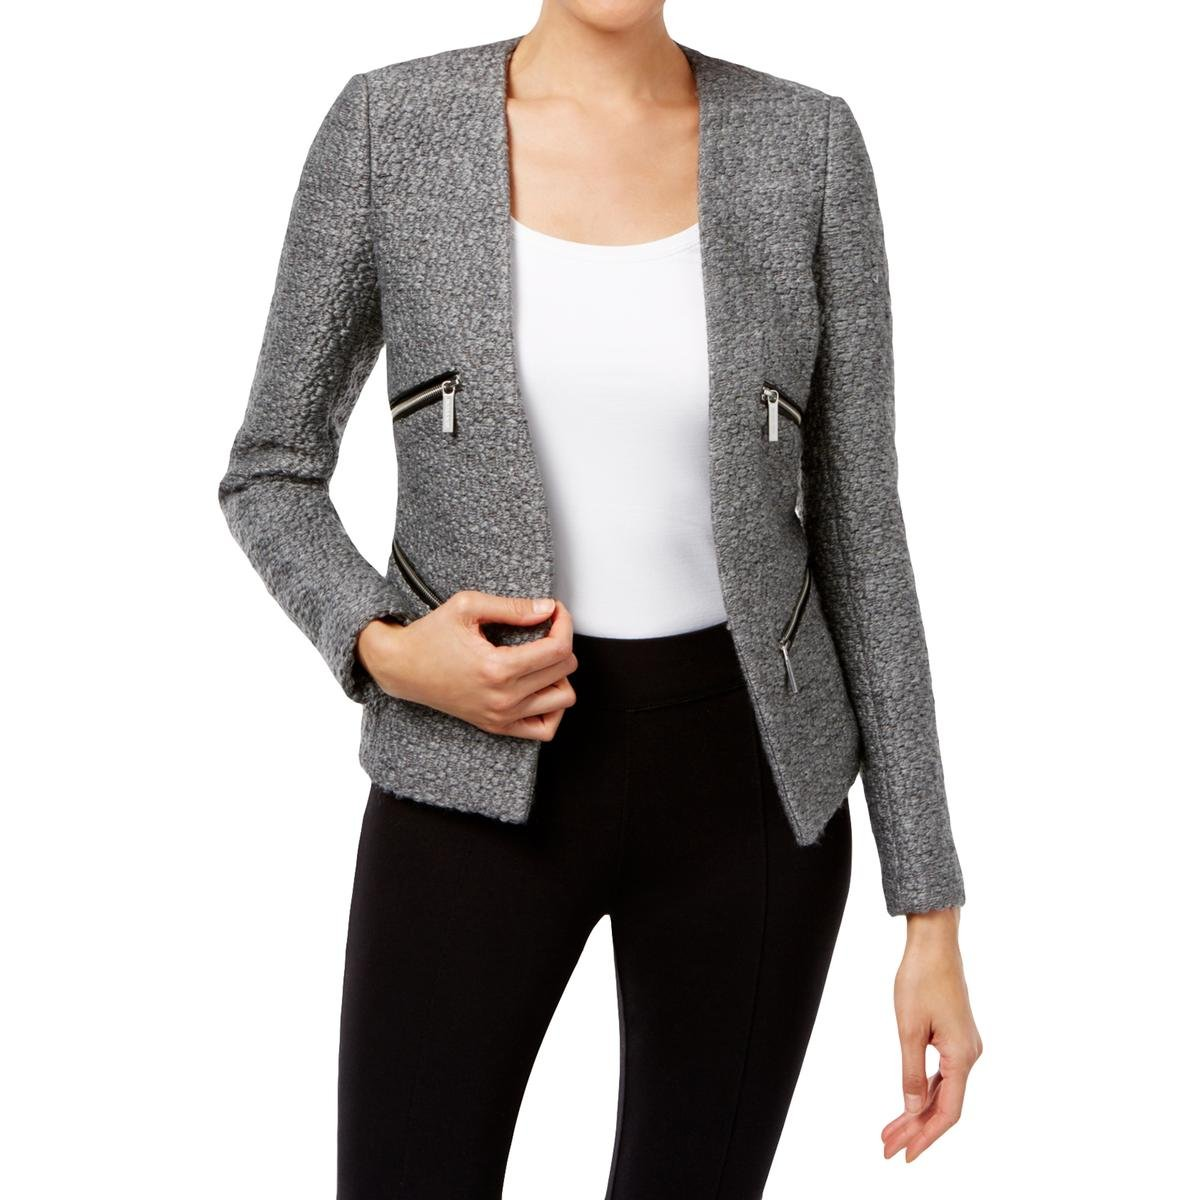 Michael Kors Womens Jacquard Marled Open-Front Blazer Gray 16